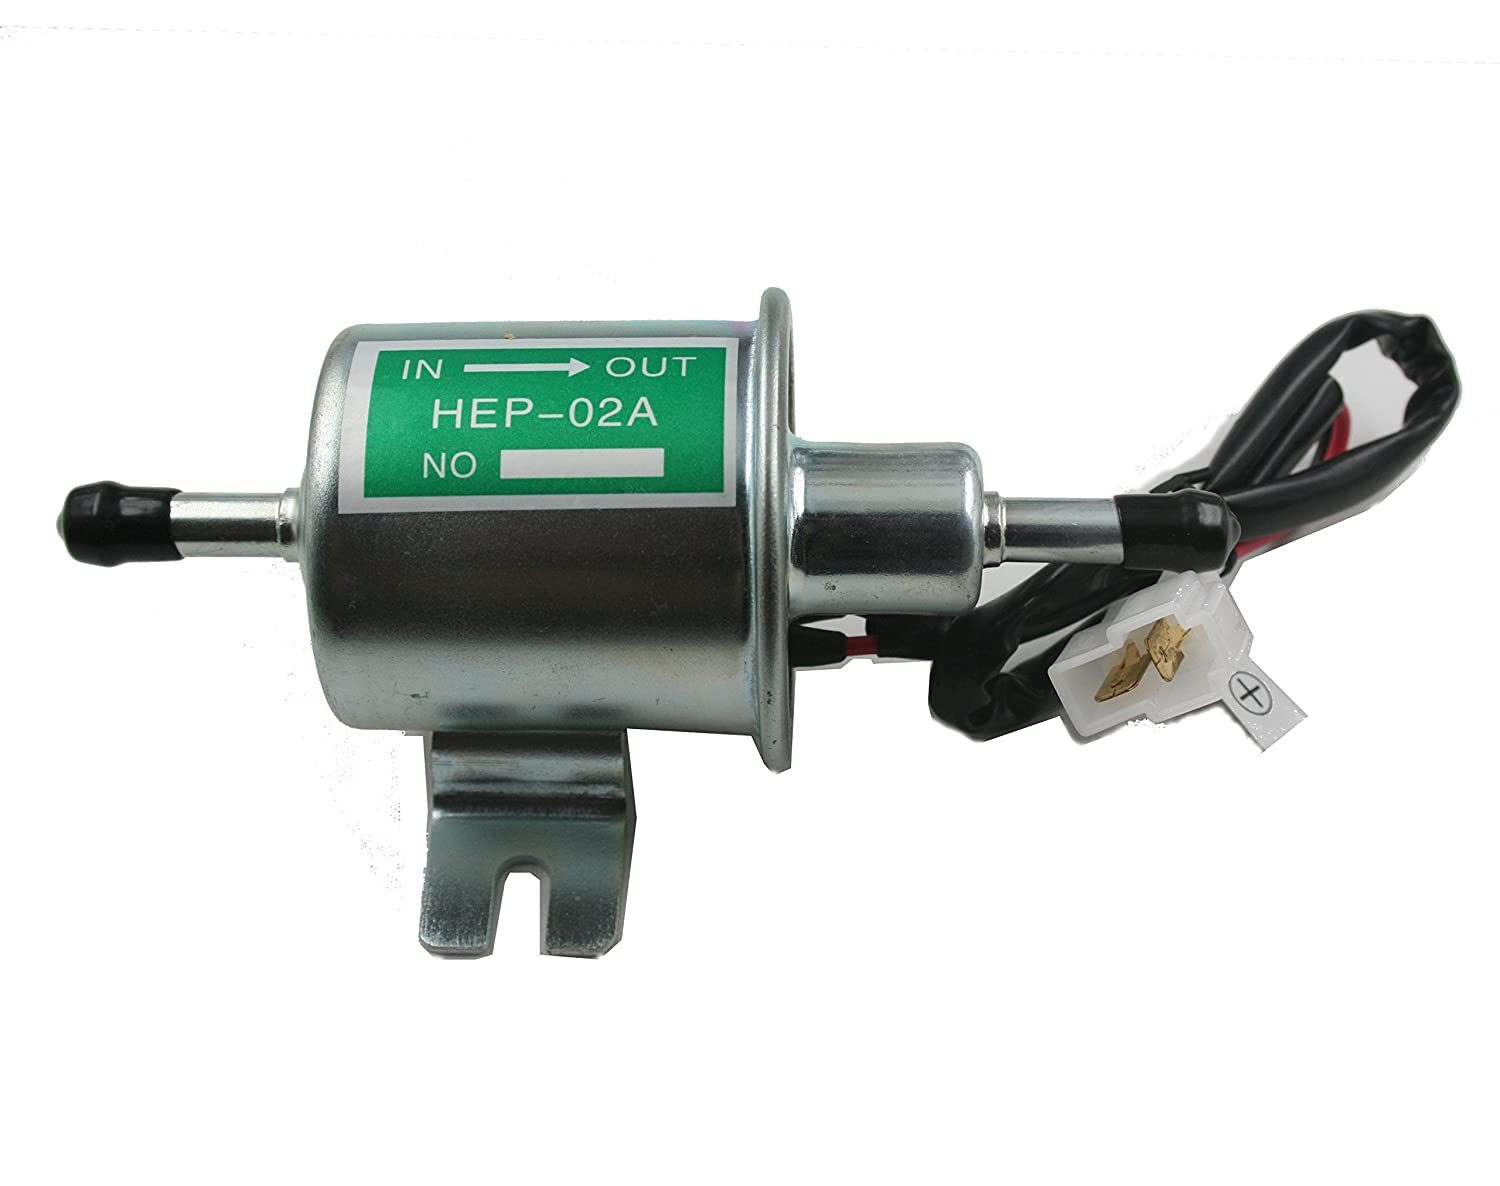 Xtremeamazing Universal Electric Fuel Pump For Motorcycle Diagram Low Pressure 12v Carburated Fp 02 Atv Automotive